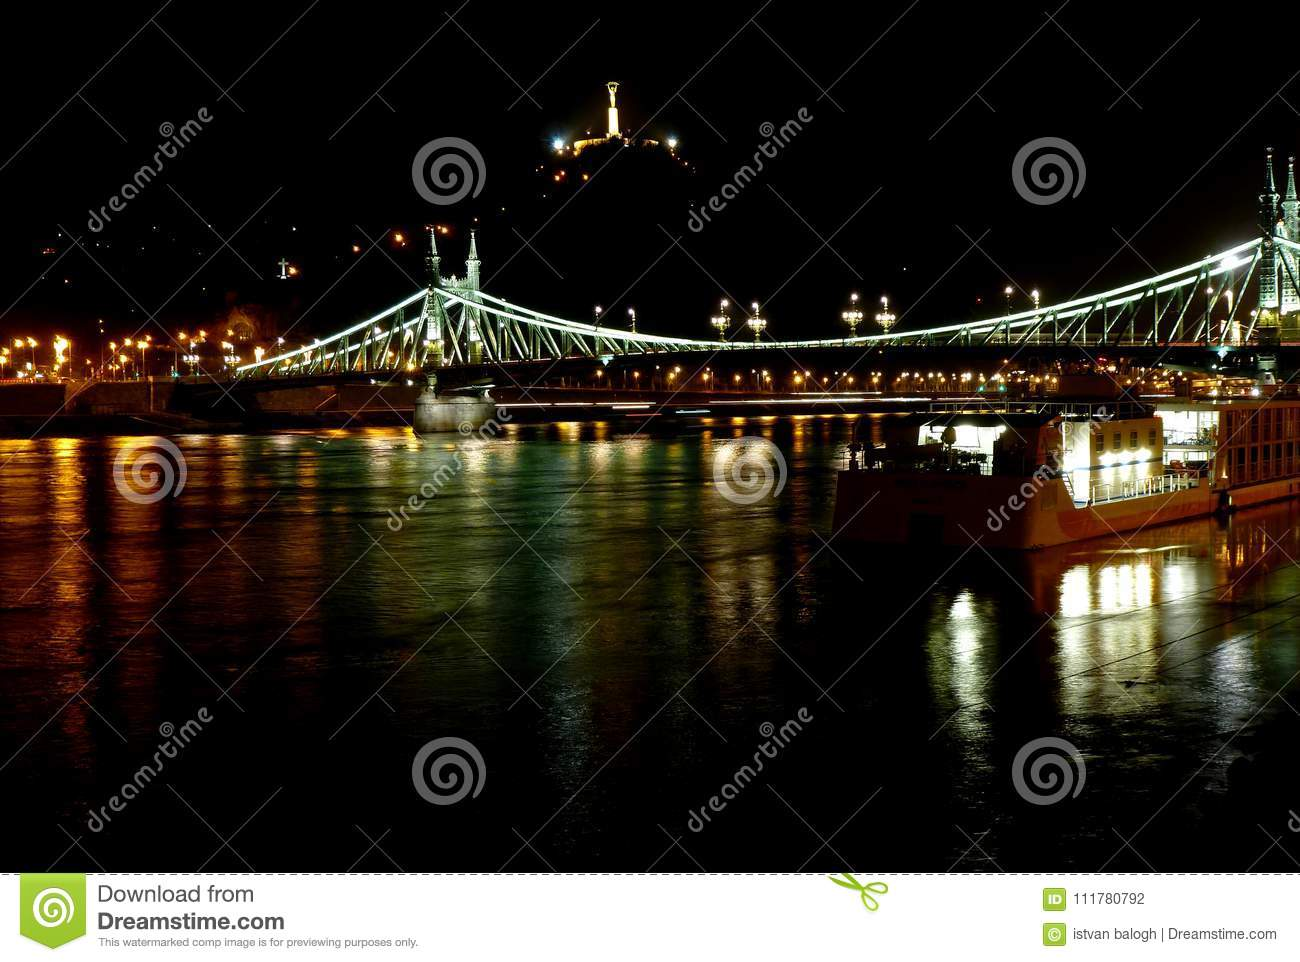 Liberty Bridge over the Danube in Budapest at Night